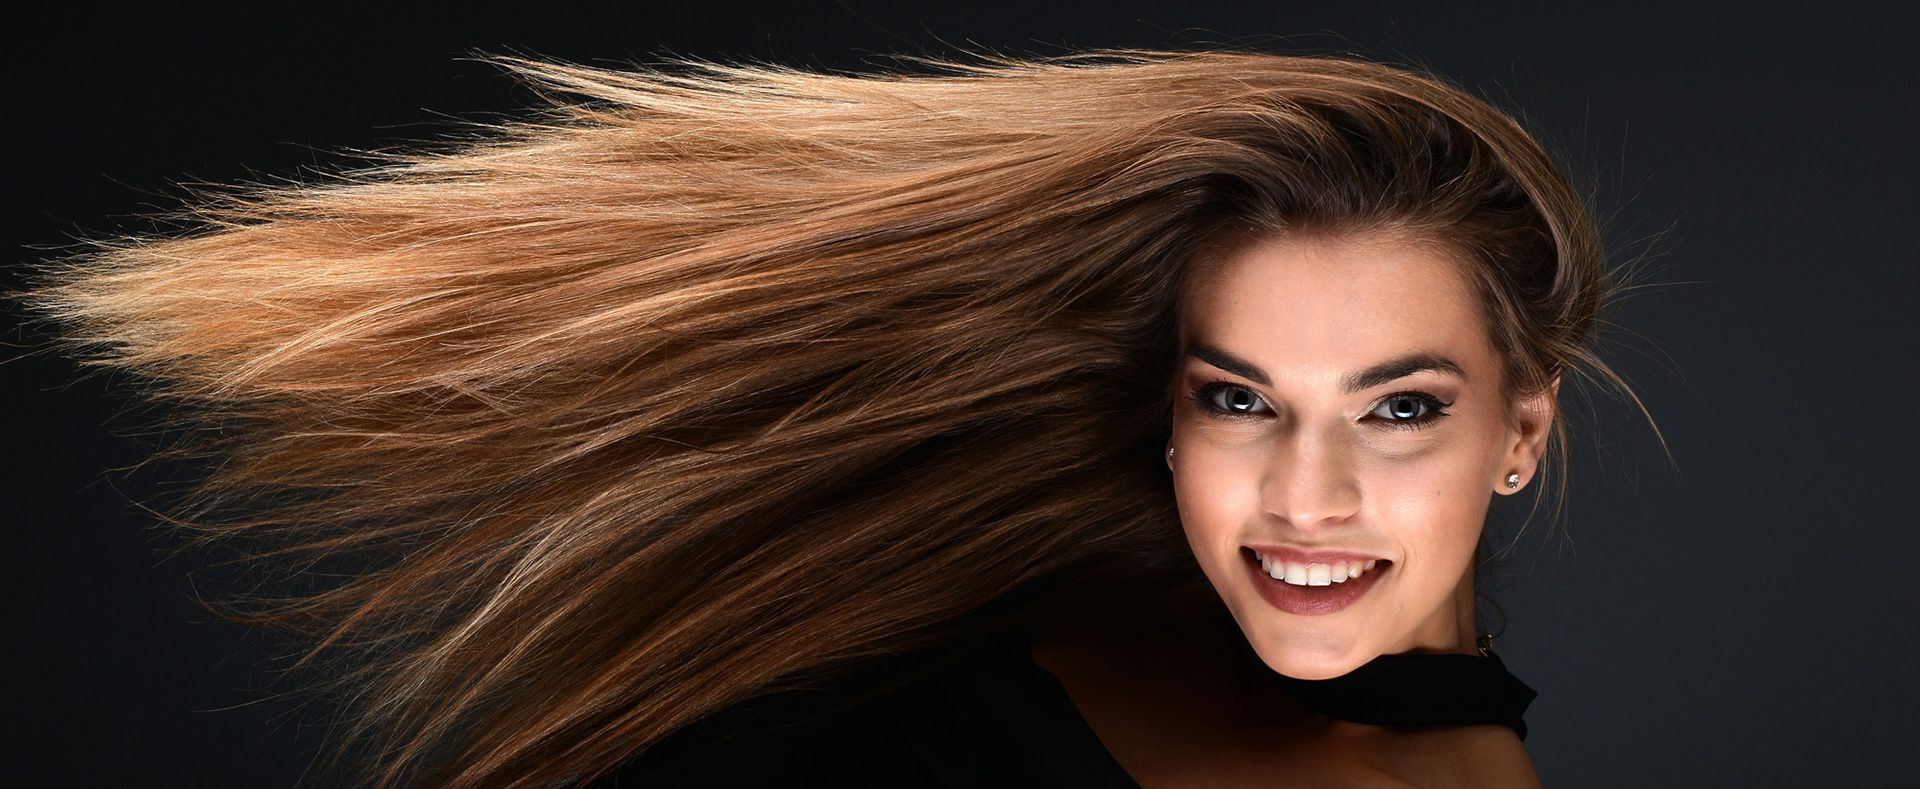 Hairstyles for Thicker Hair